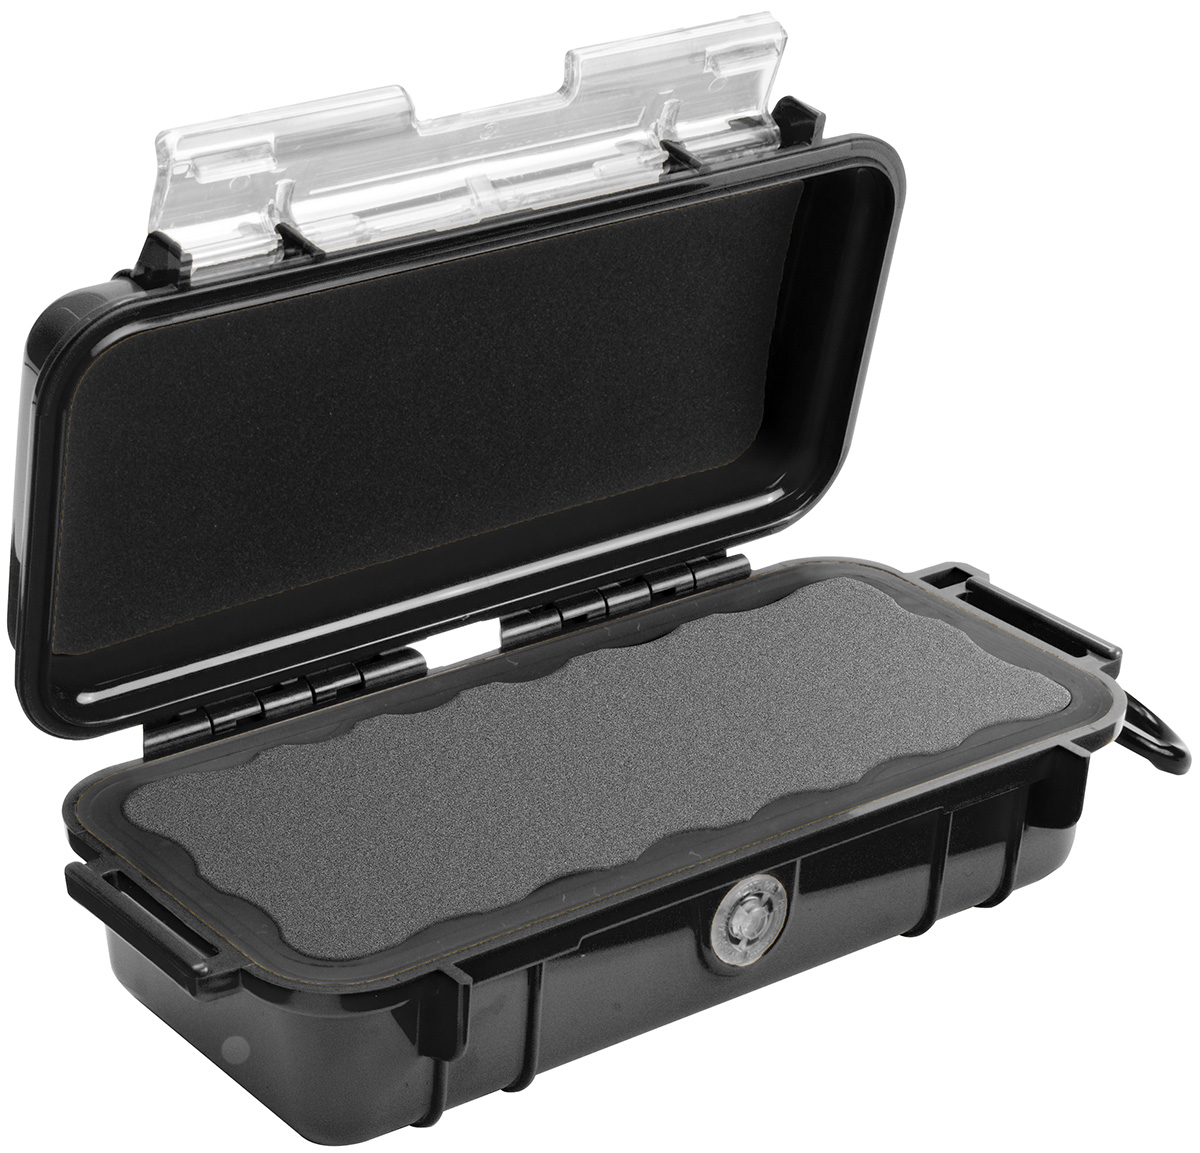 pelican peli products 1030 survival waterproof watertight case